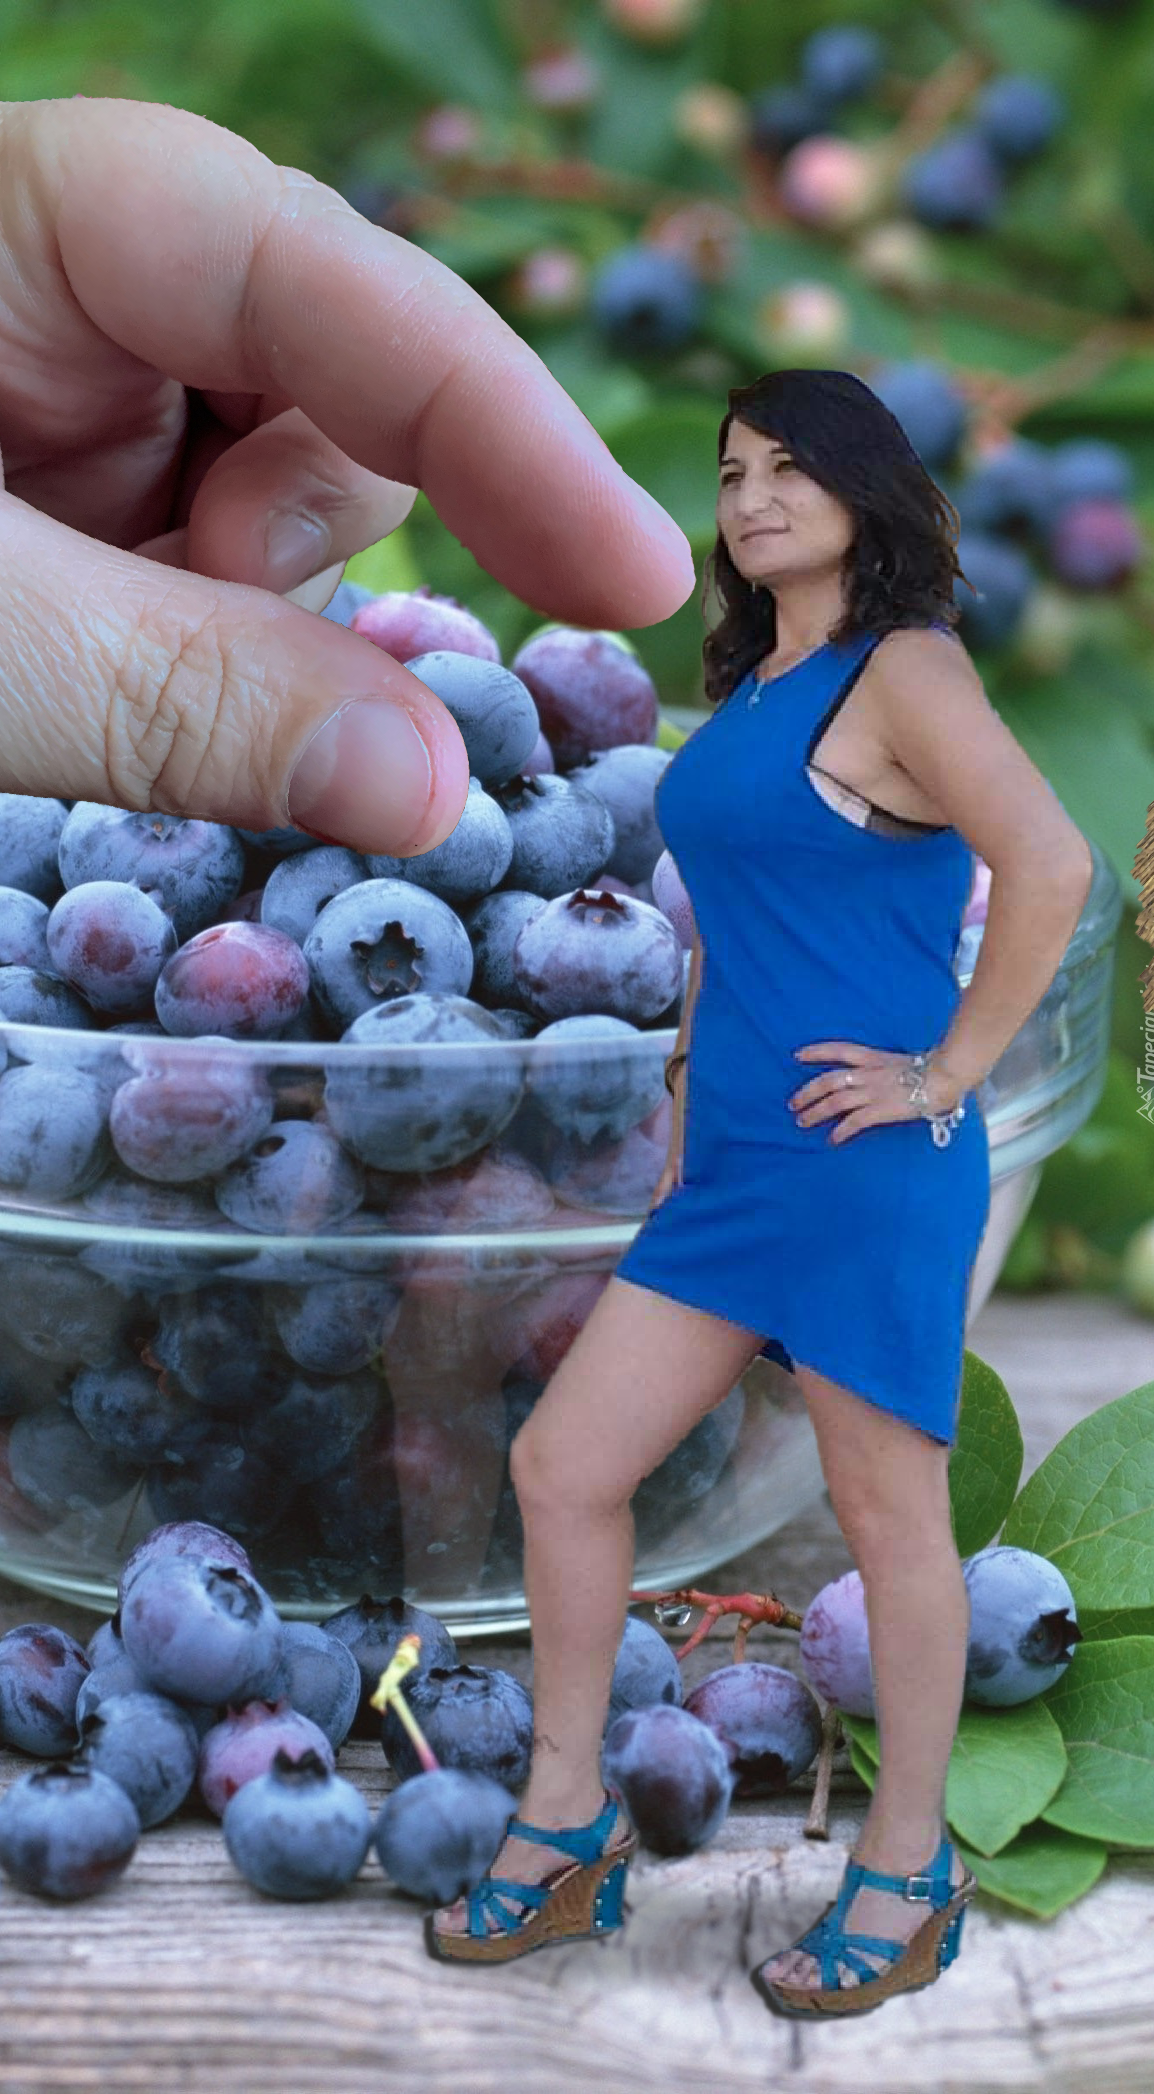 fingers reaching to pluck blue clad breast instead of boring berry